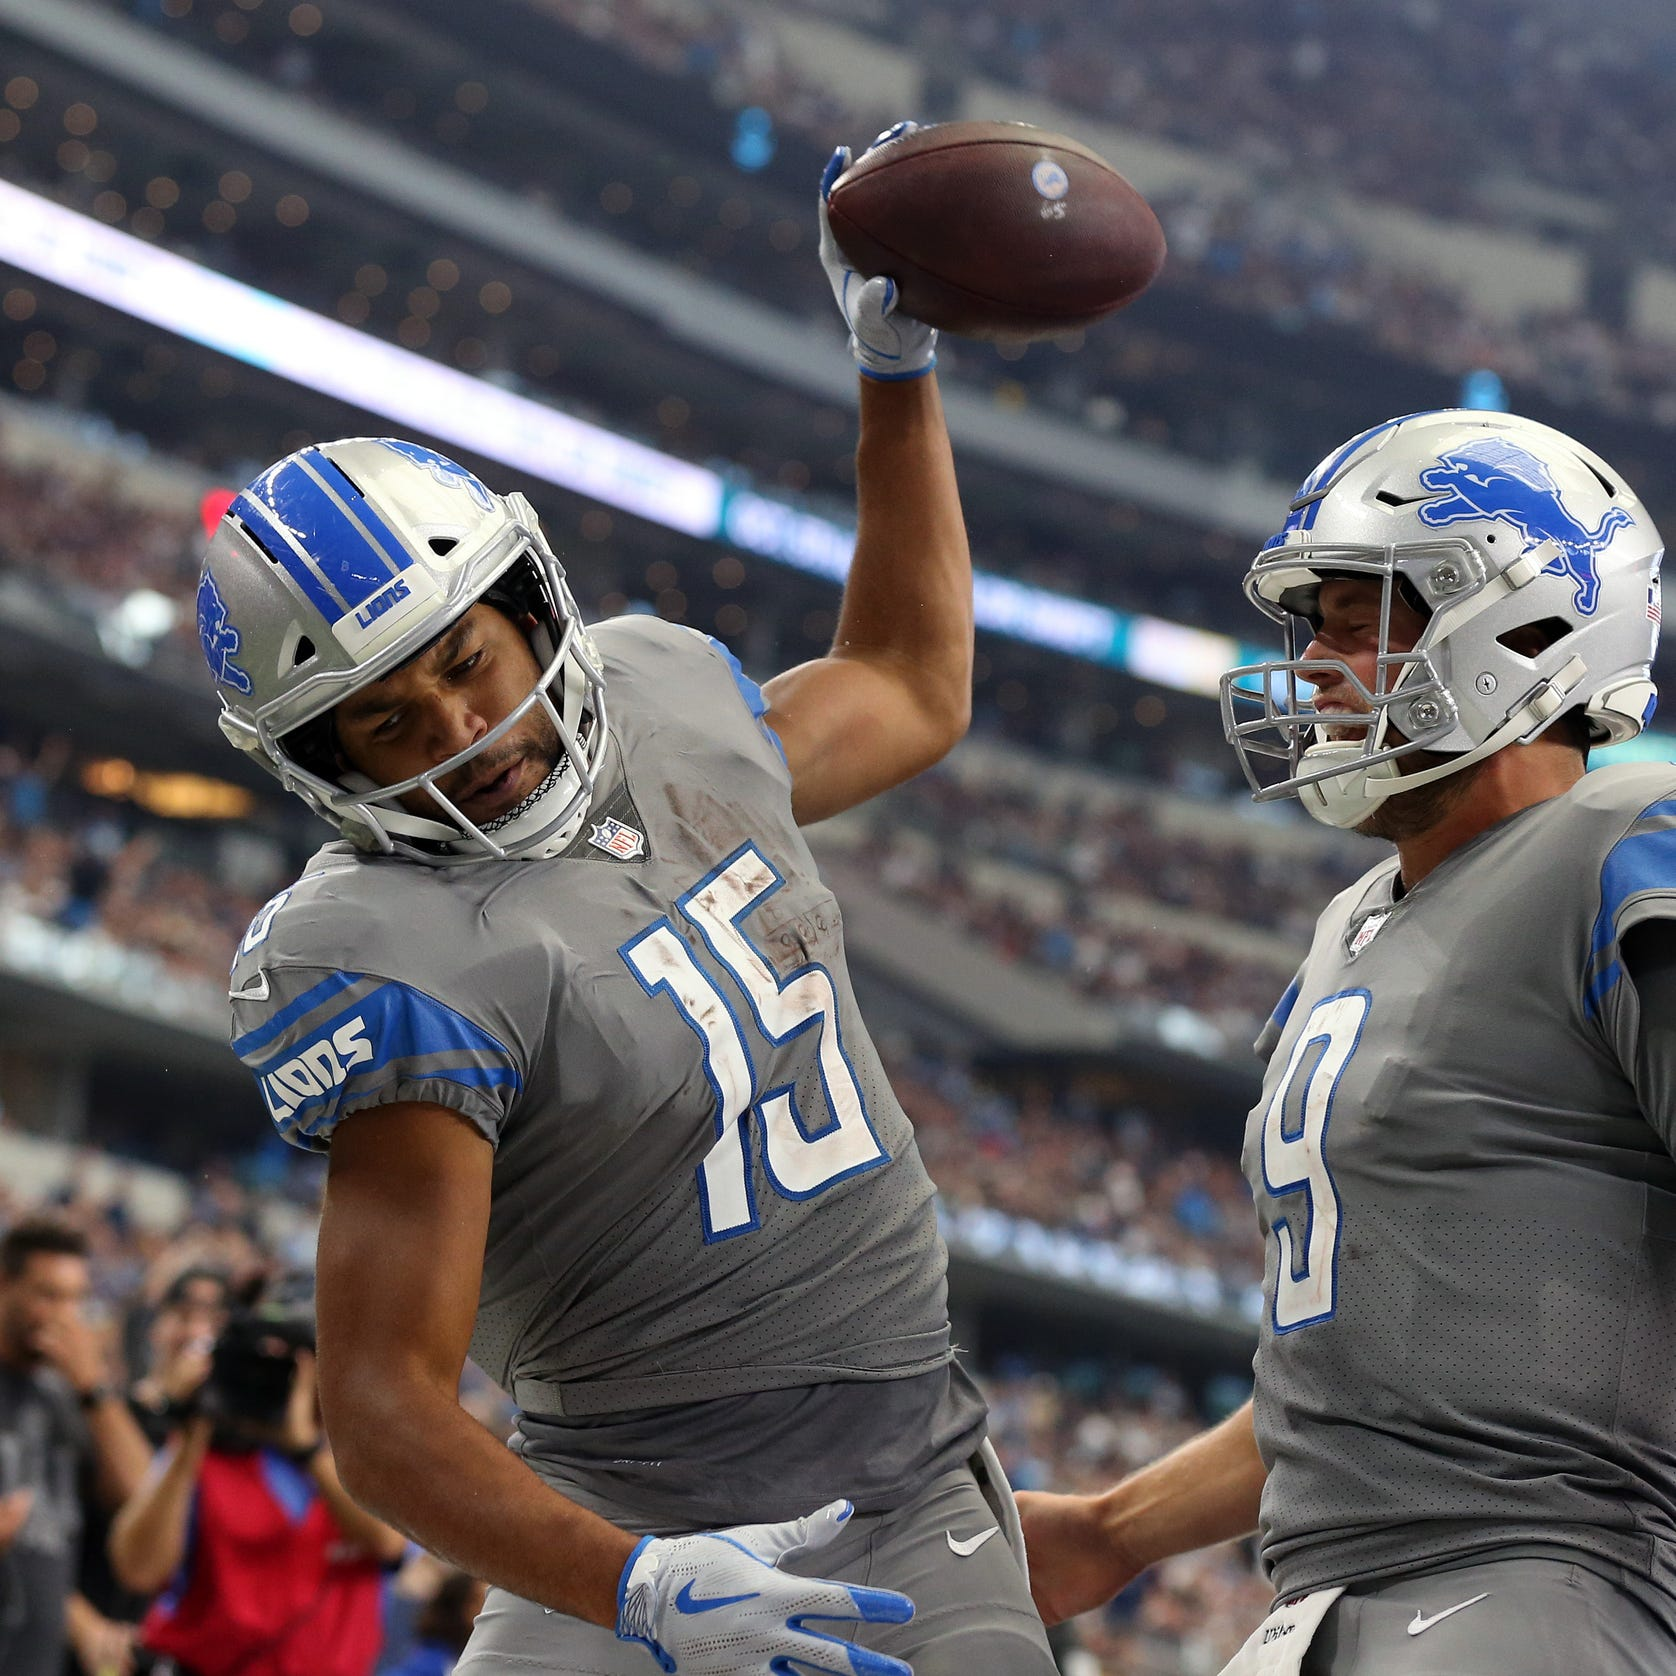 Detroit Lions just threw this season in trash by trading Golden Tate